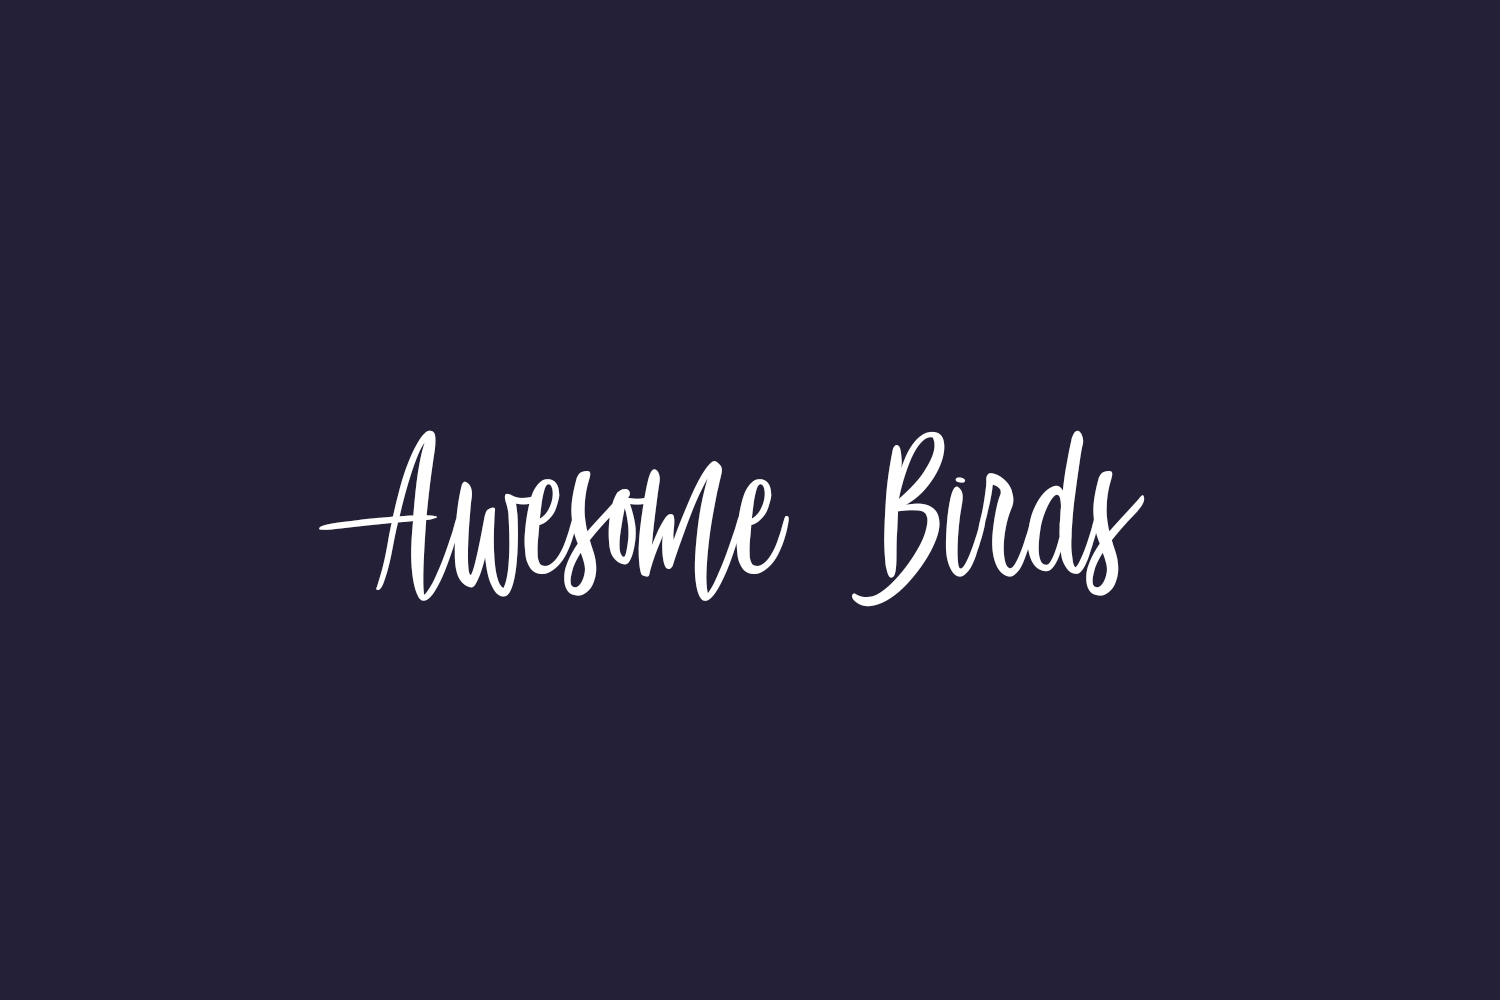 Awesome Birds Free Font